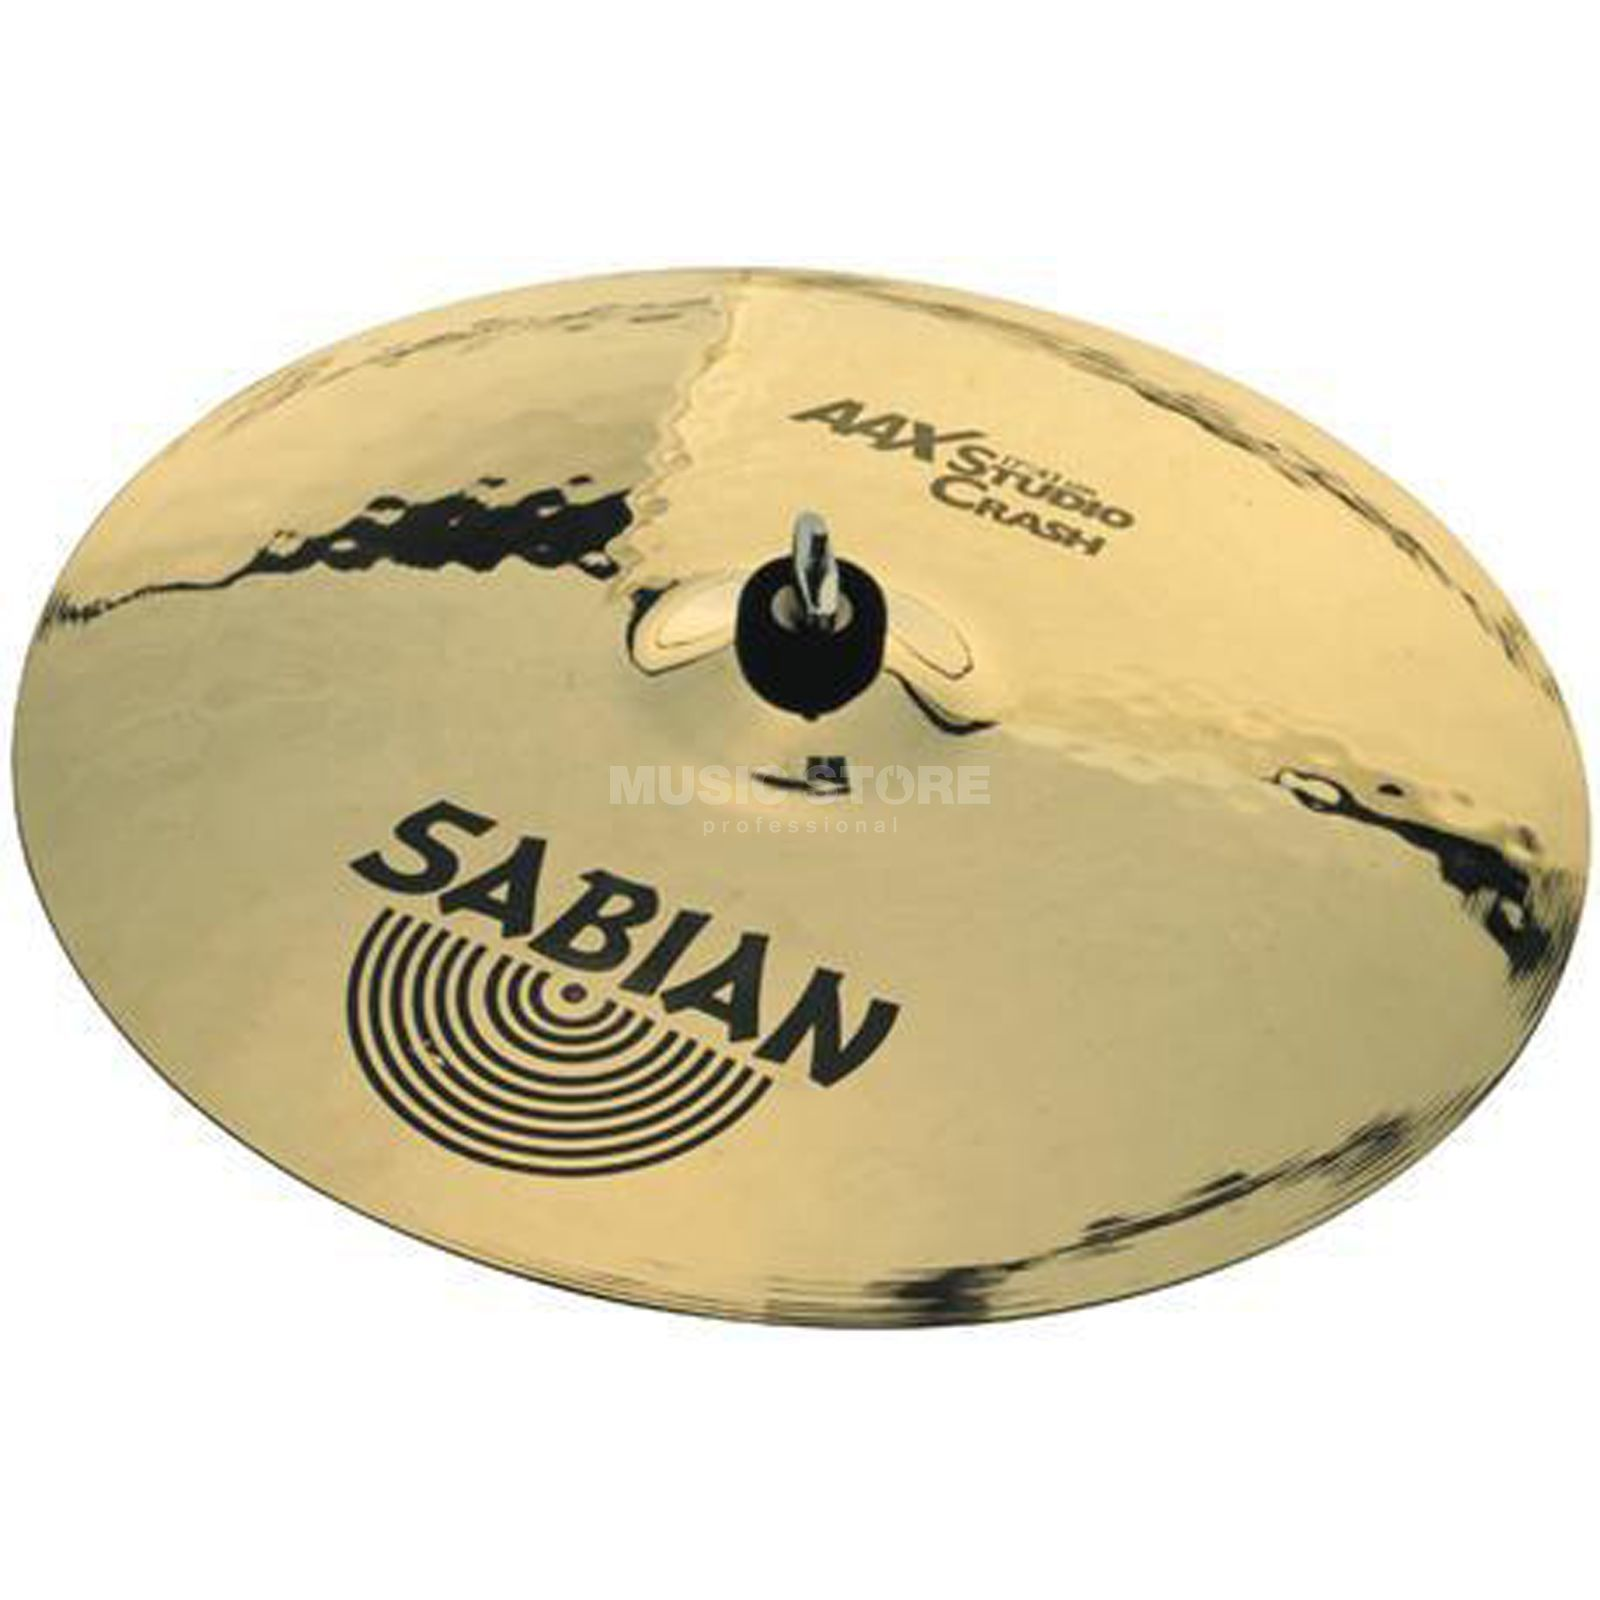 "Sabian AAX Studio Crash 18"", Brilliant Finish Produktbild"